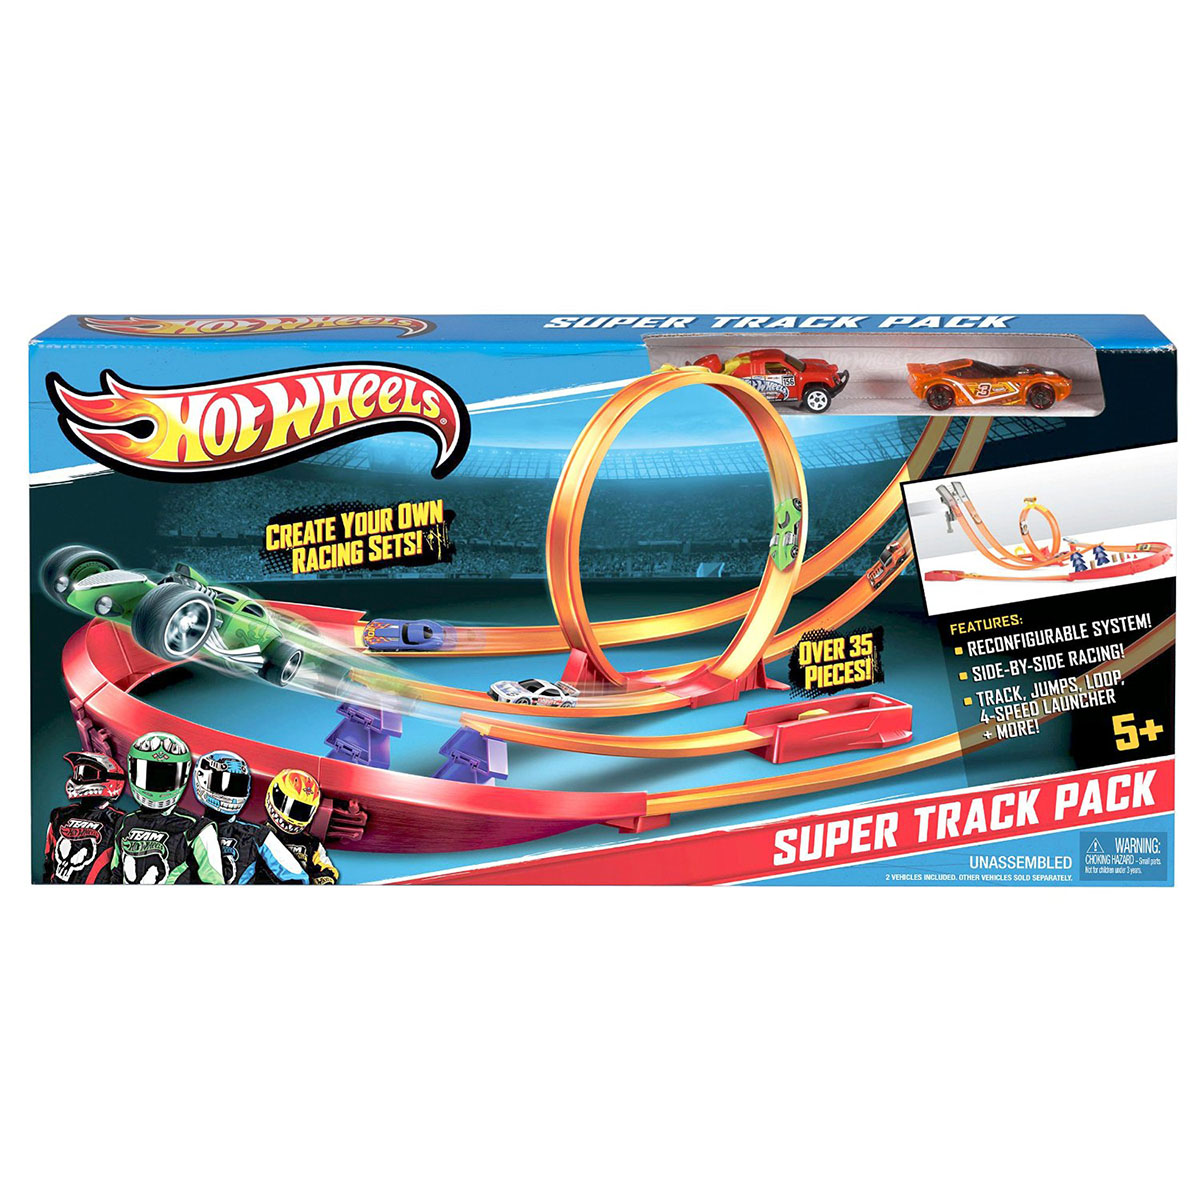 Hot Wheels Y0276 - Bo duong dua sang tao